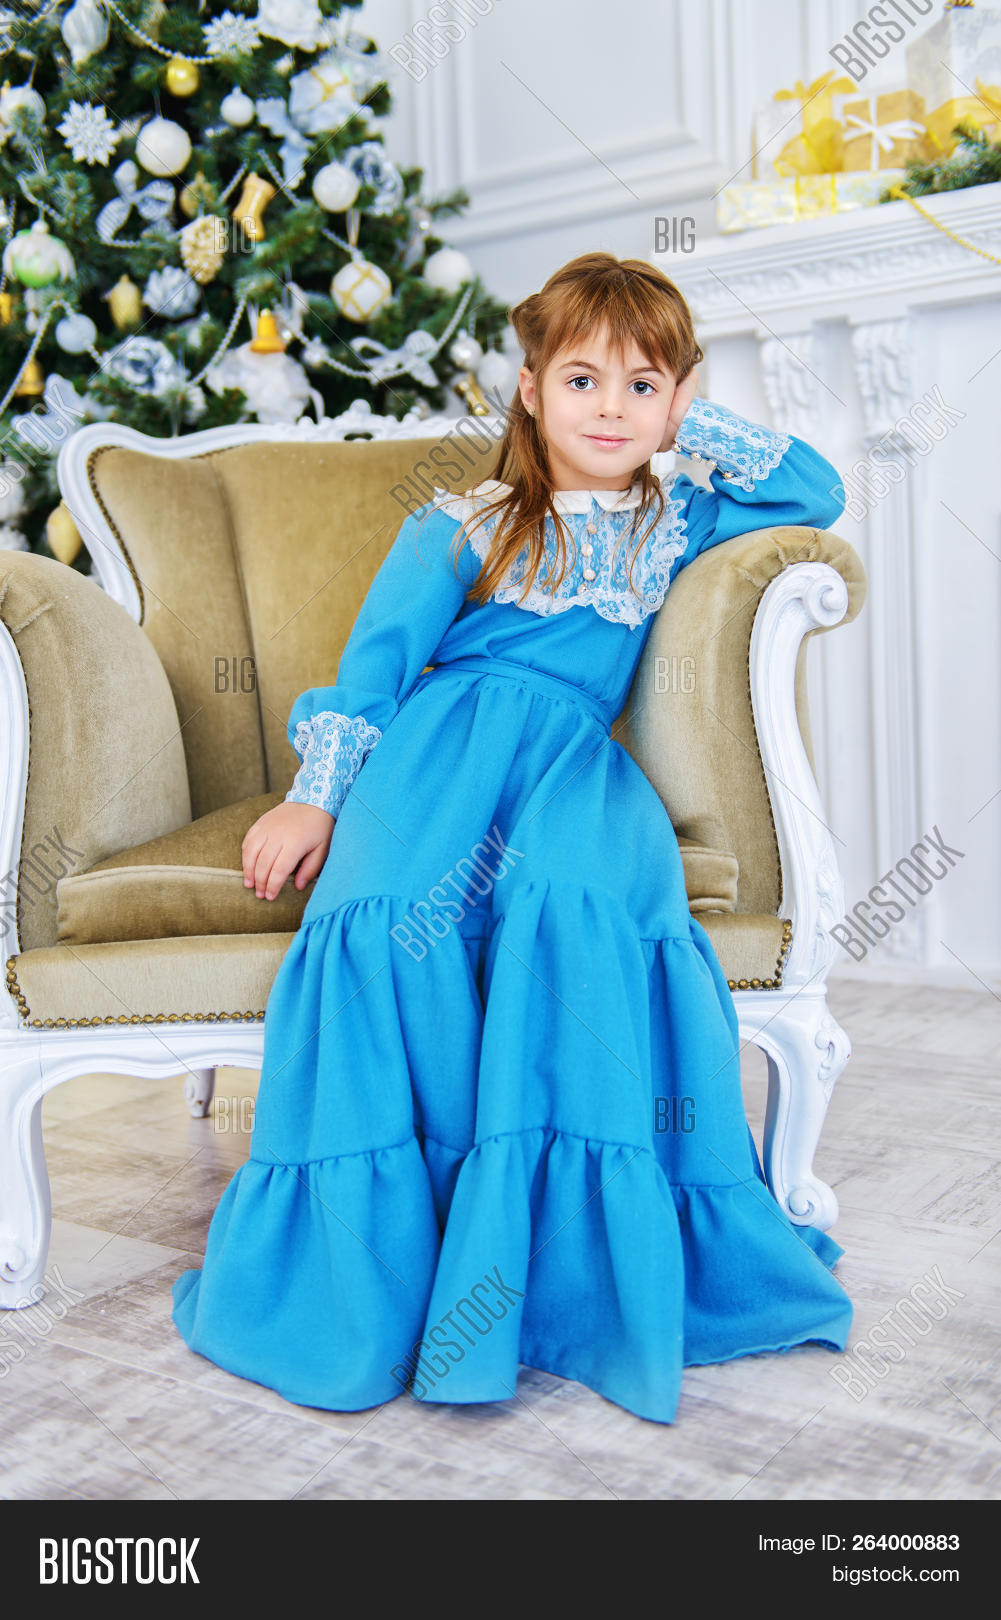 Pretty Little Girl Image \u0026 Photo (Free Trial)